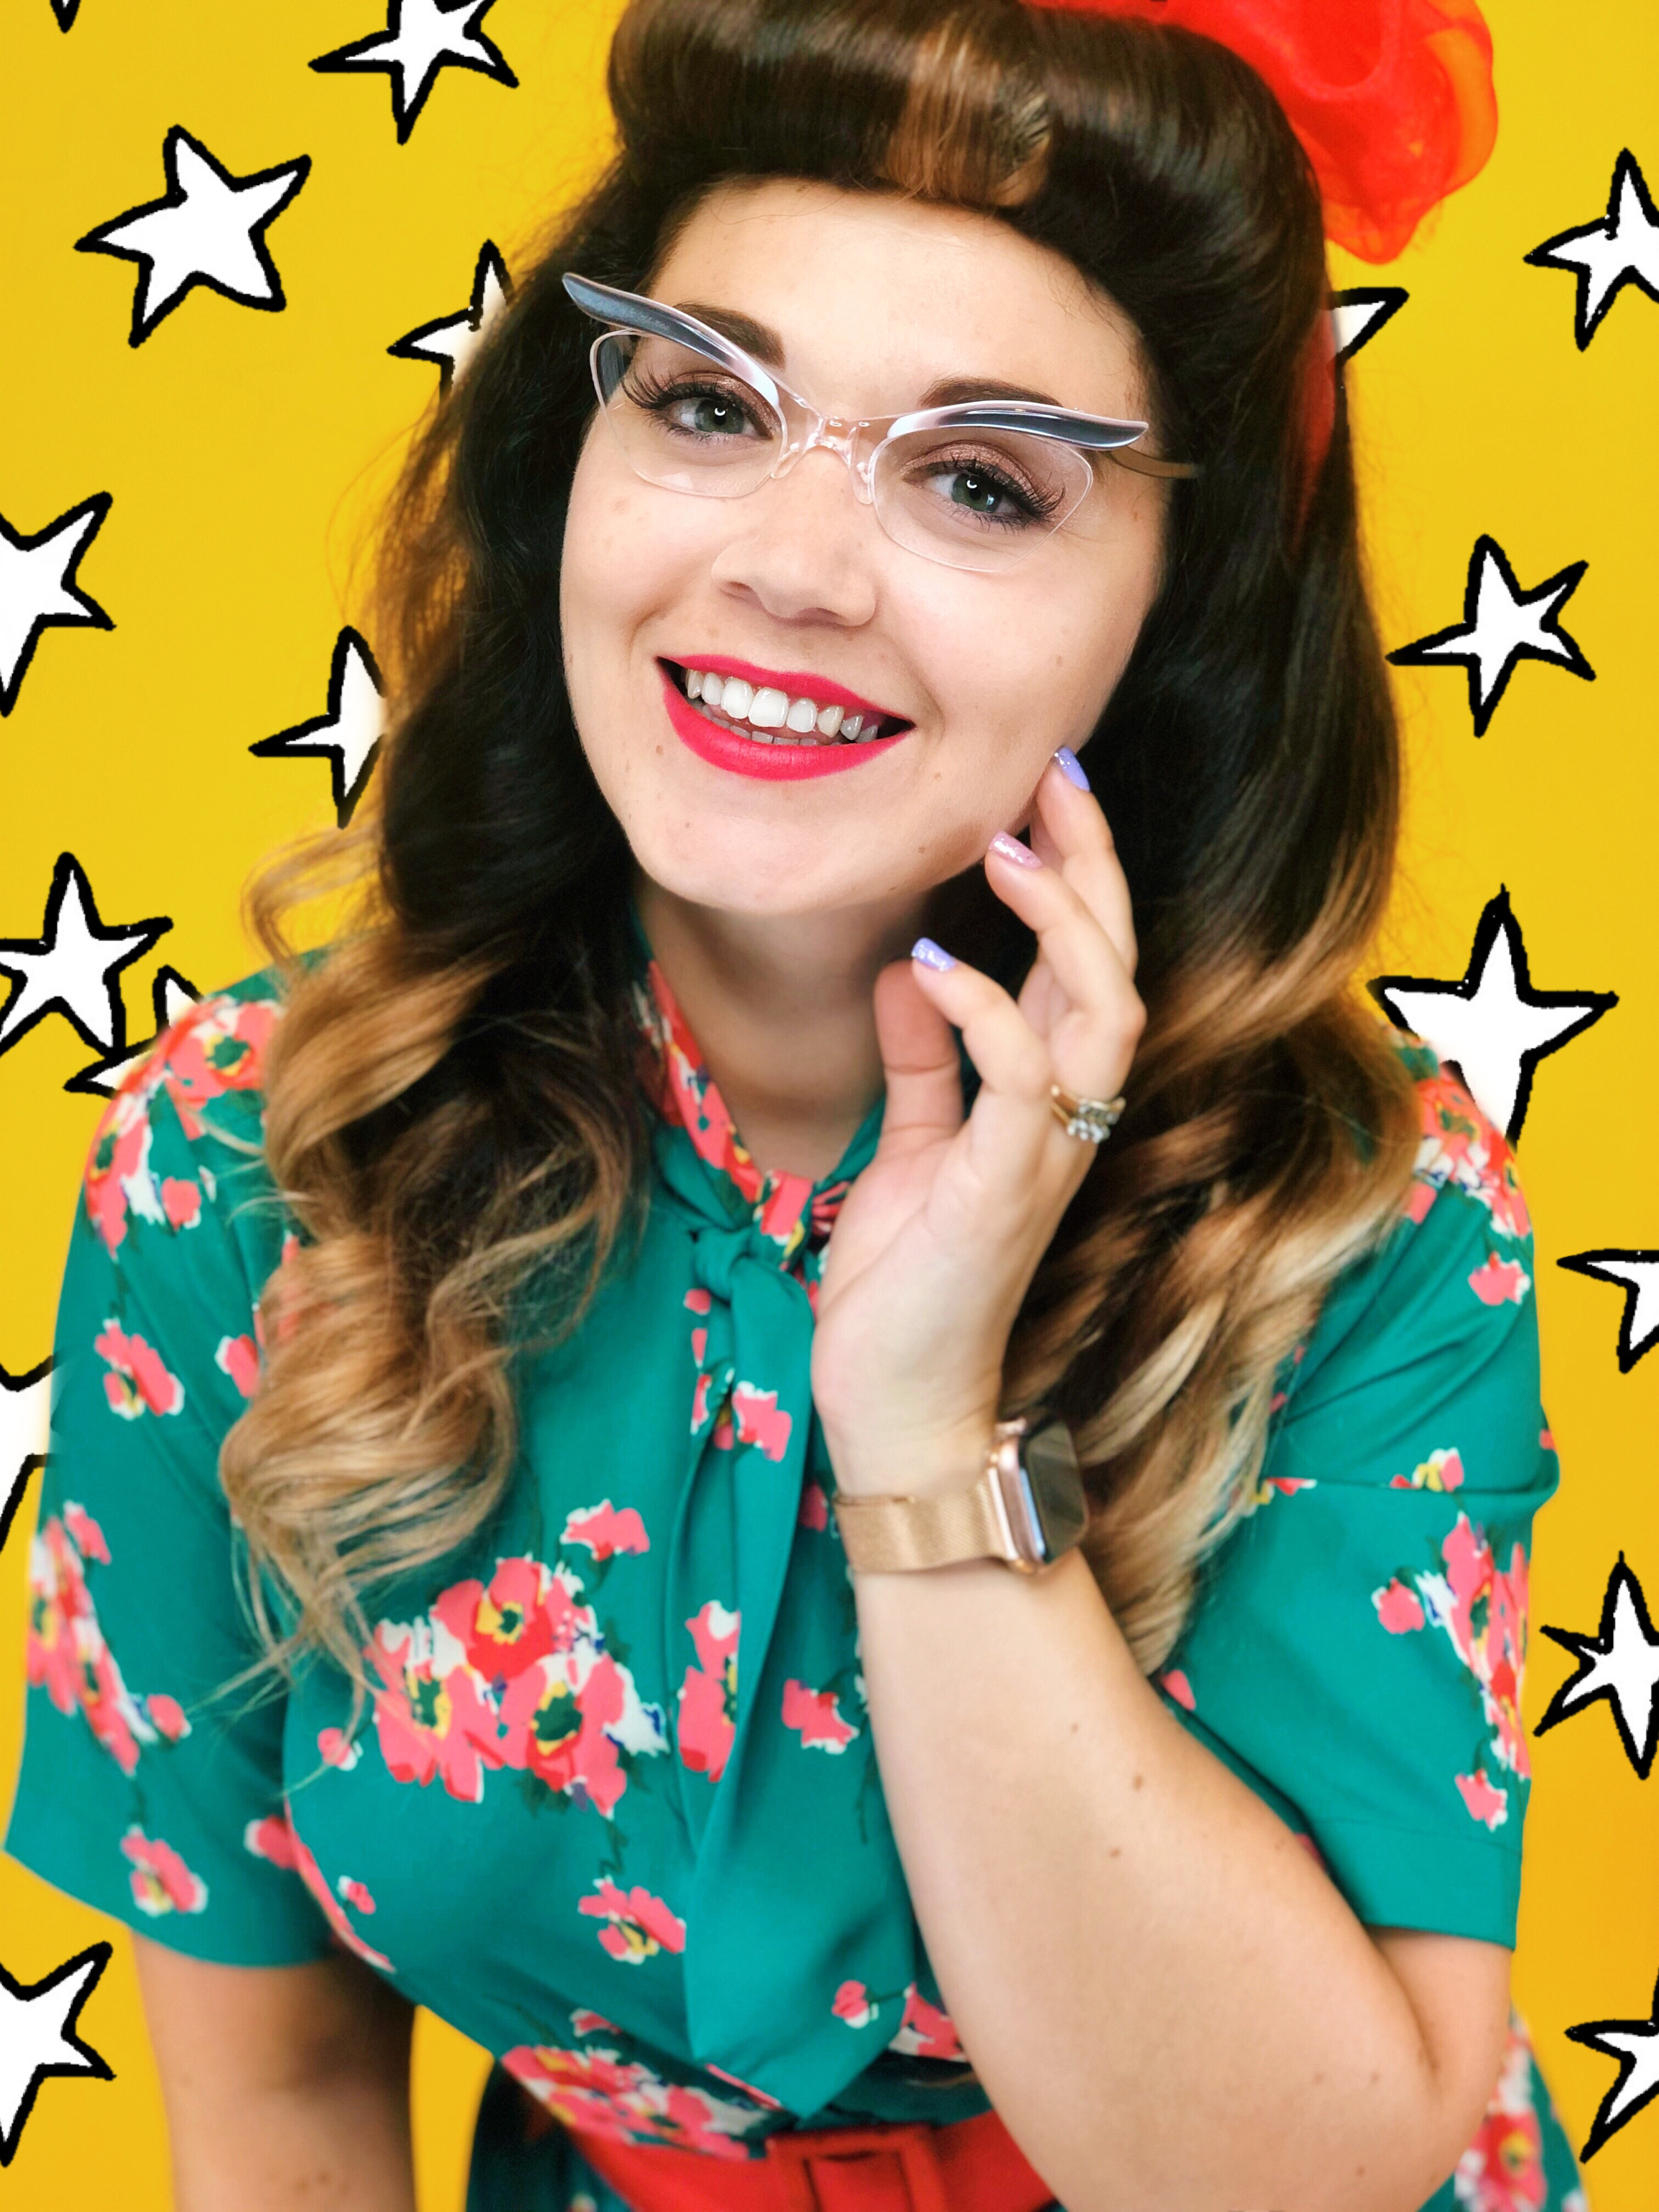 magical-glasses-from-i-need-spex